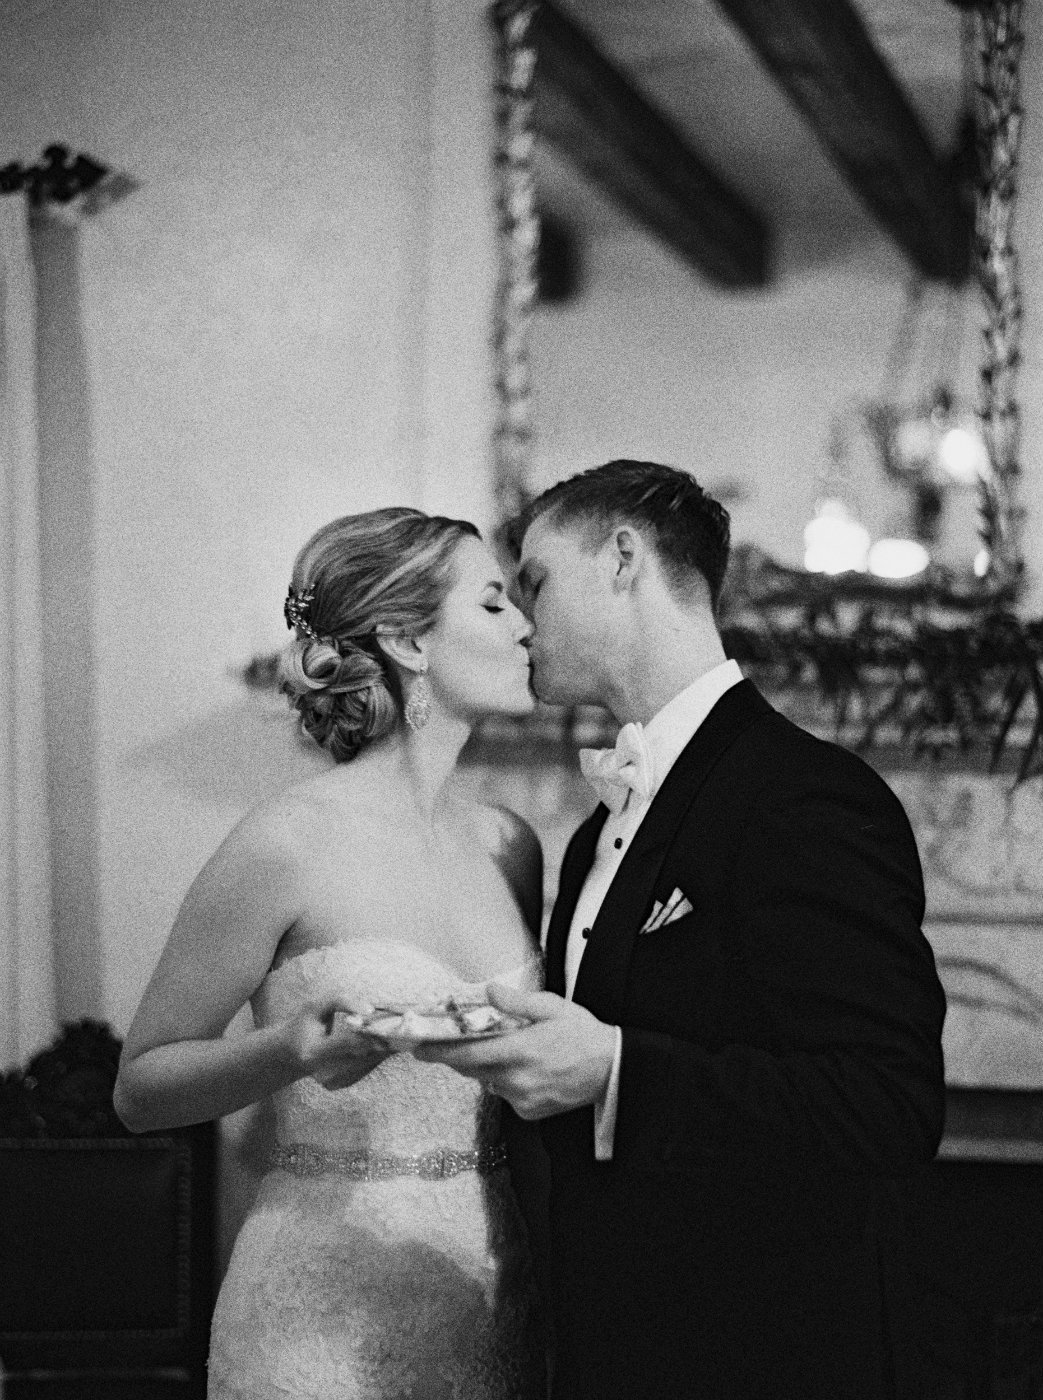 paige_wedding_melanie_gabrielle_photography_194